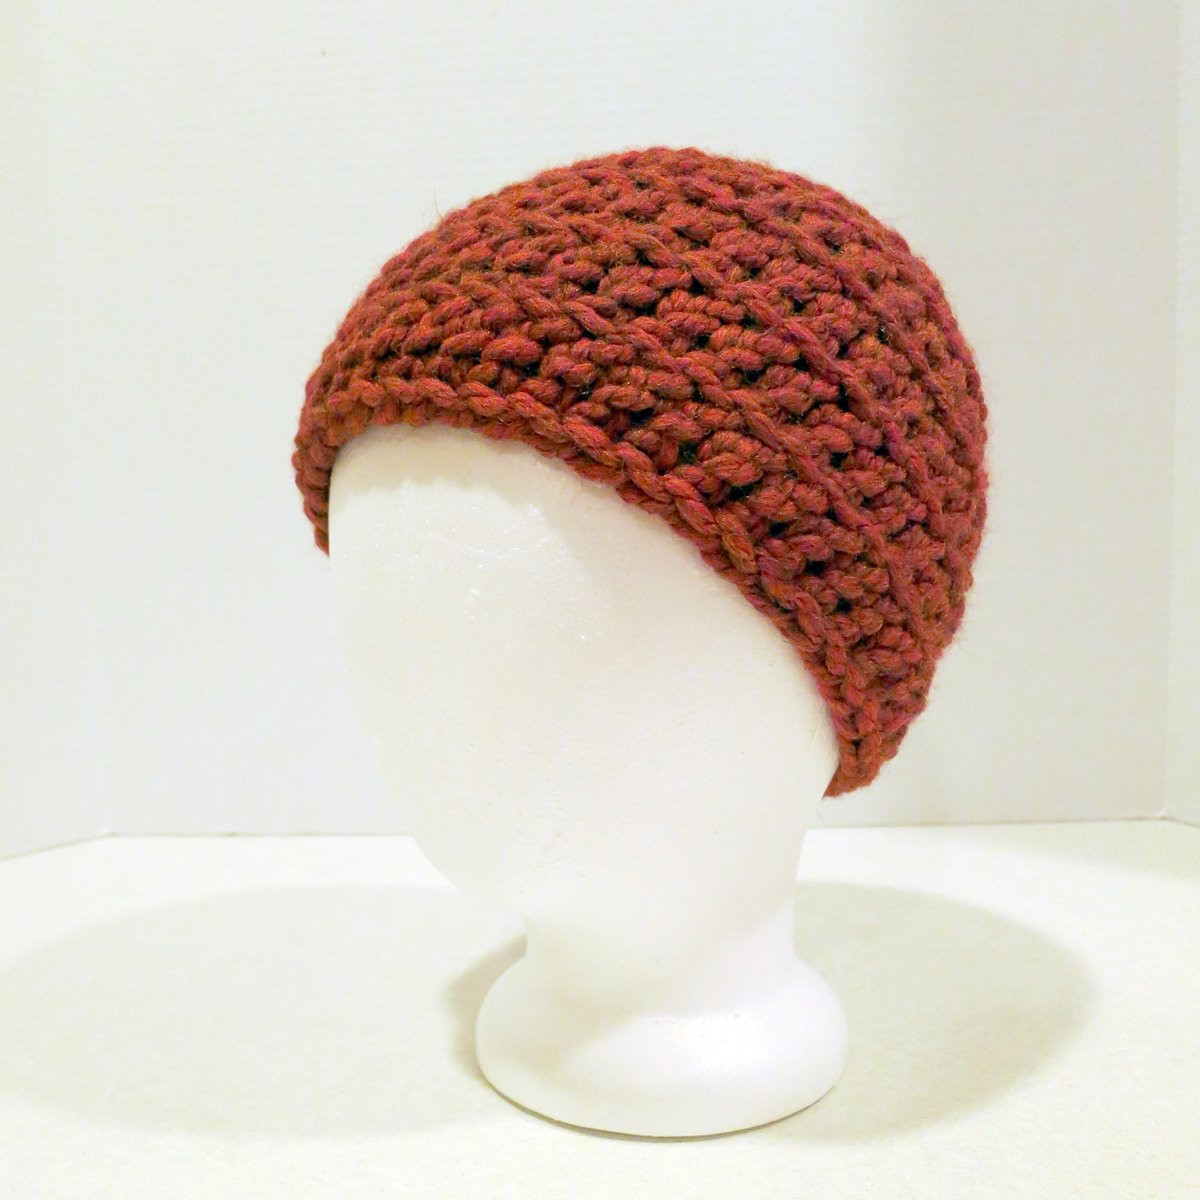 Lovely Crochet Hat Pattern Chunky Back Loop Beanie Uni Chunky Crochet Beanie Pattern Of Elegant Chunky Knit Hat Pattern Roundup 12 Quick & Cozy Patterns Chunky Crochet Beanie Pattern